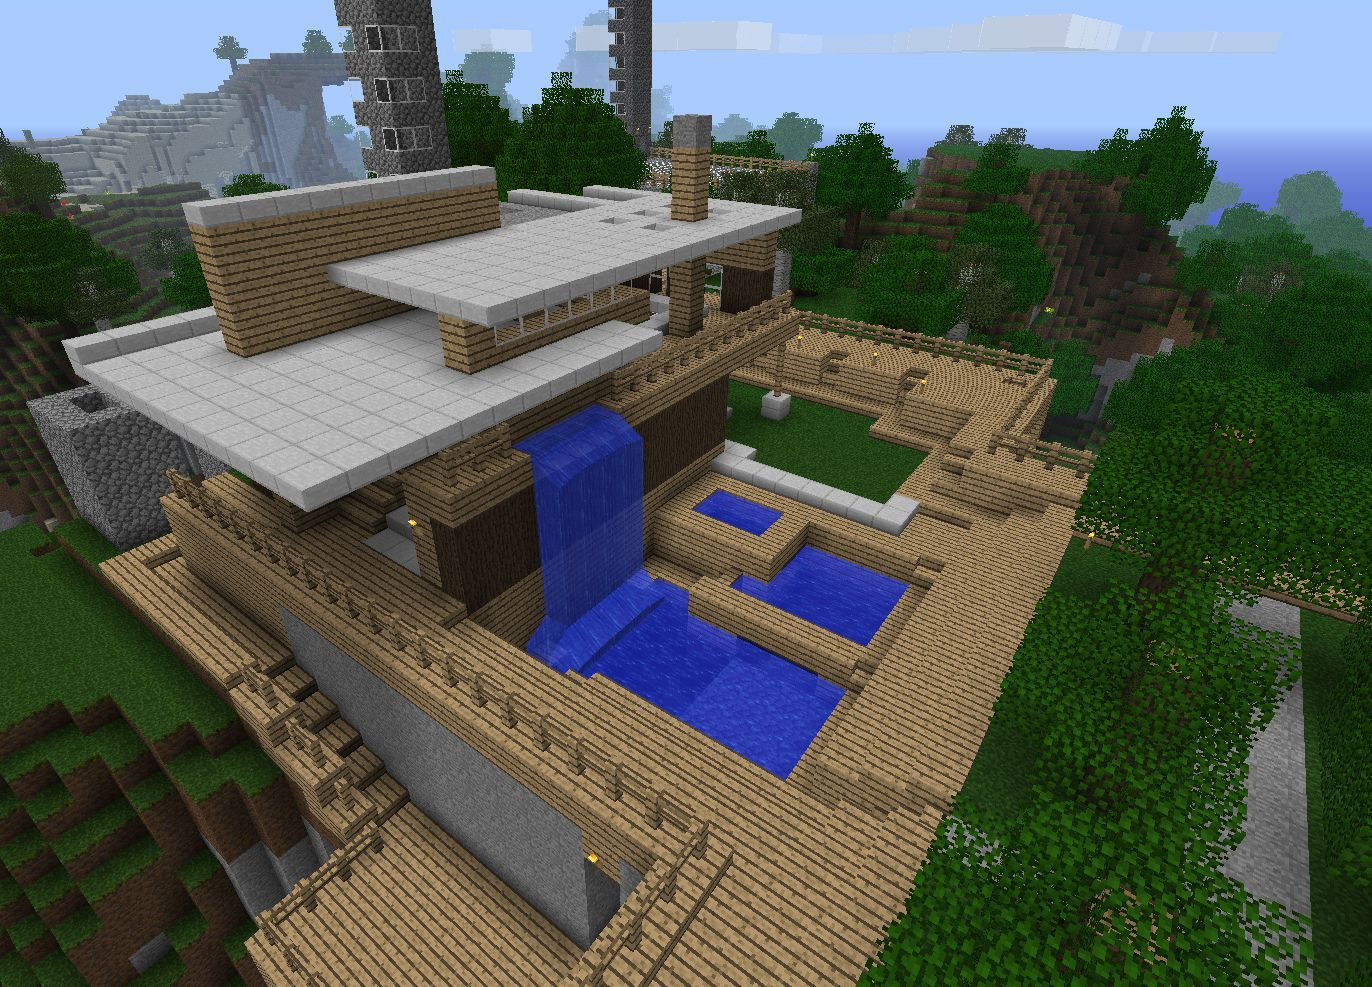 Simple minecraft house designs step by step